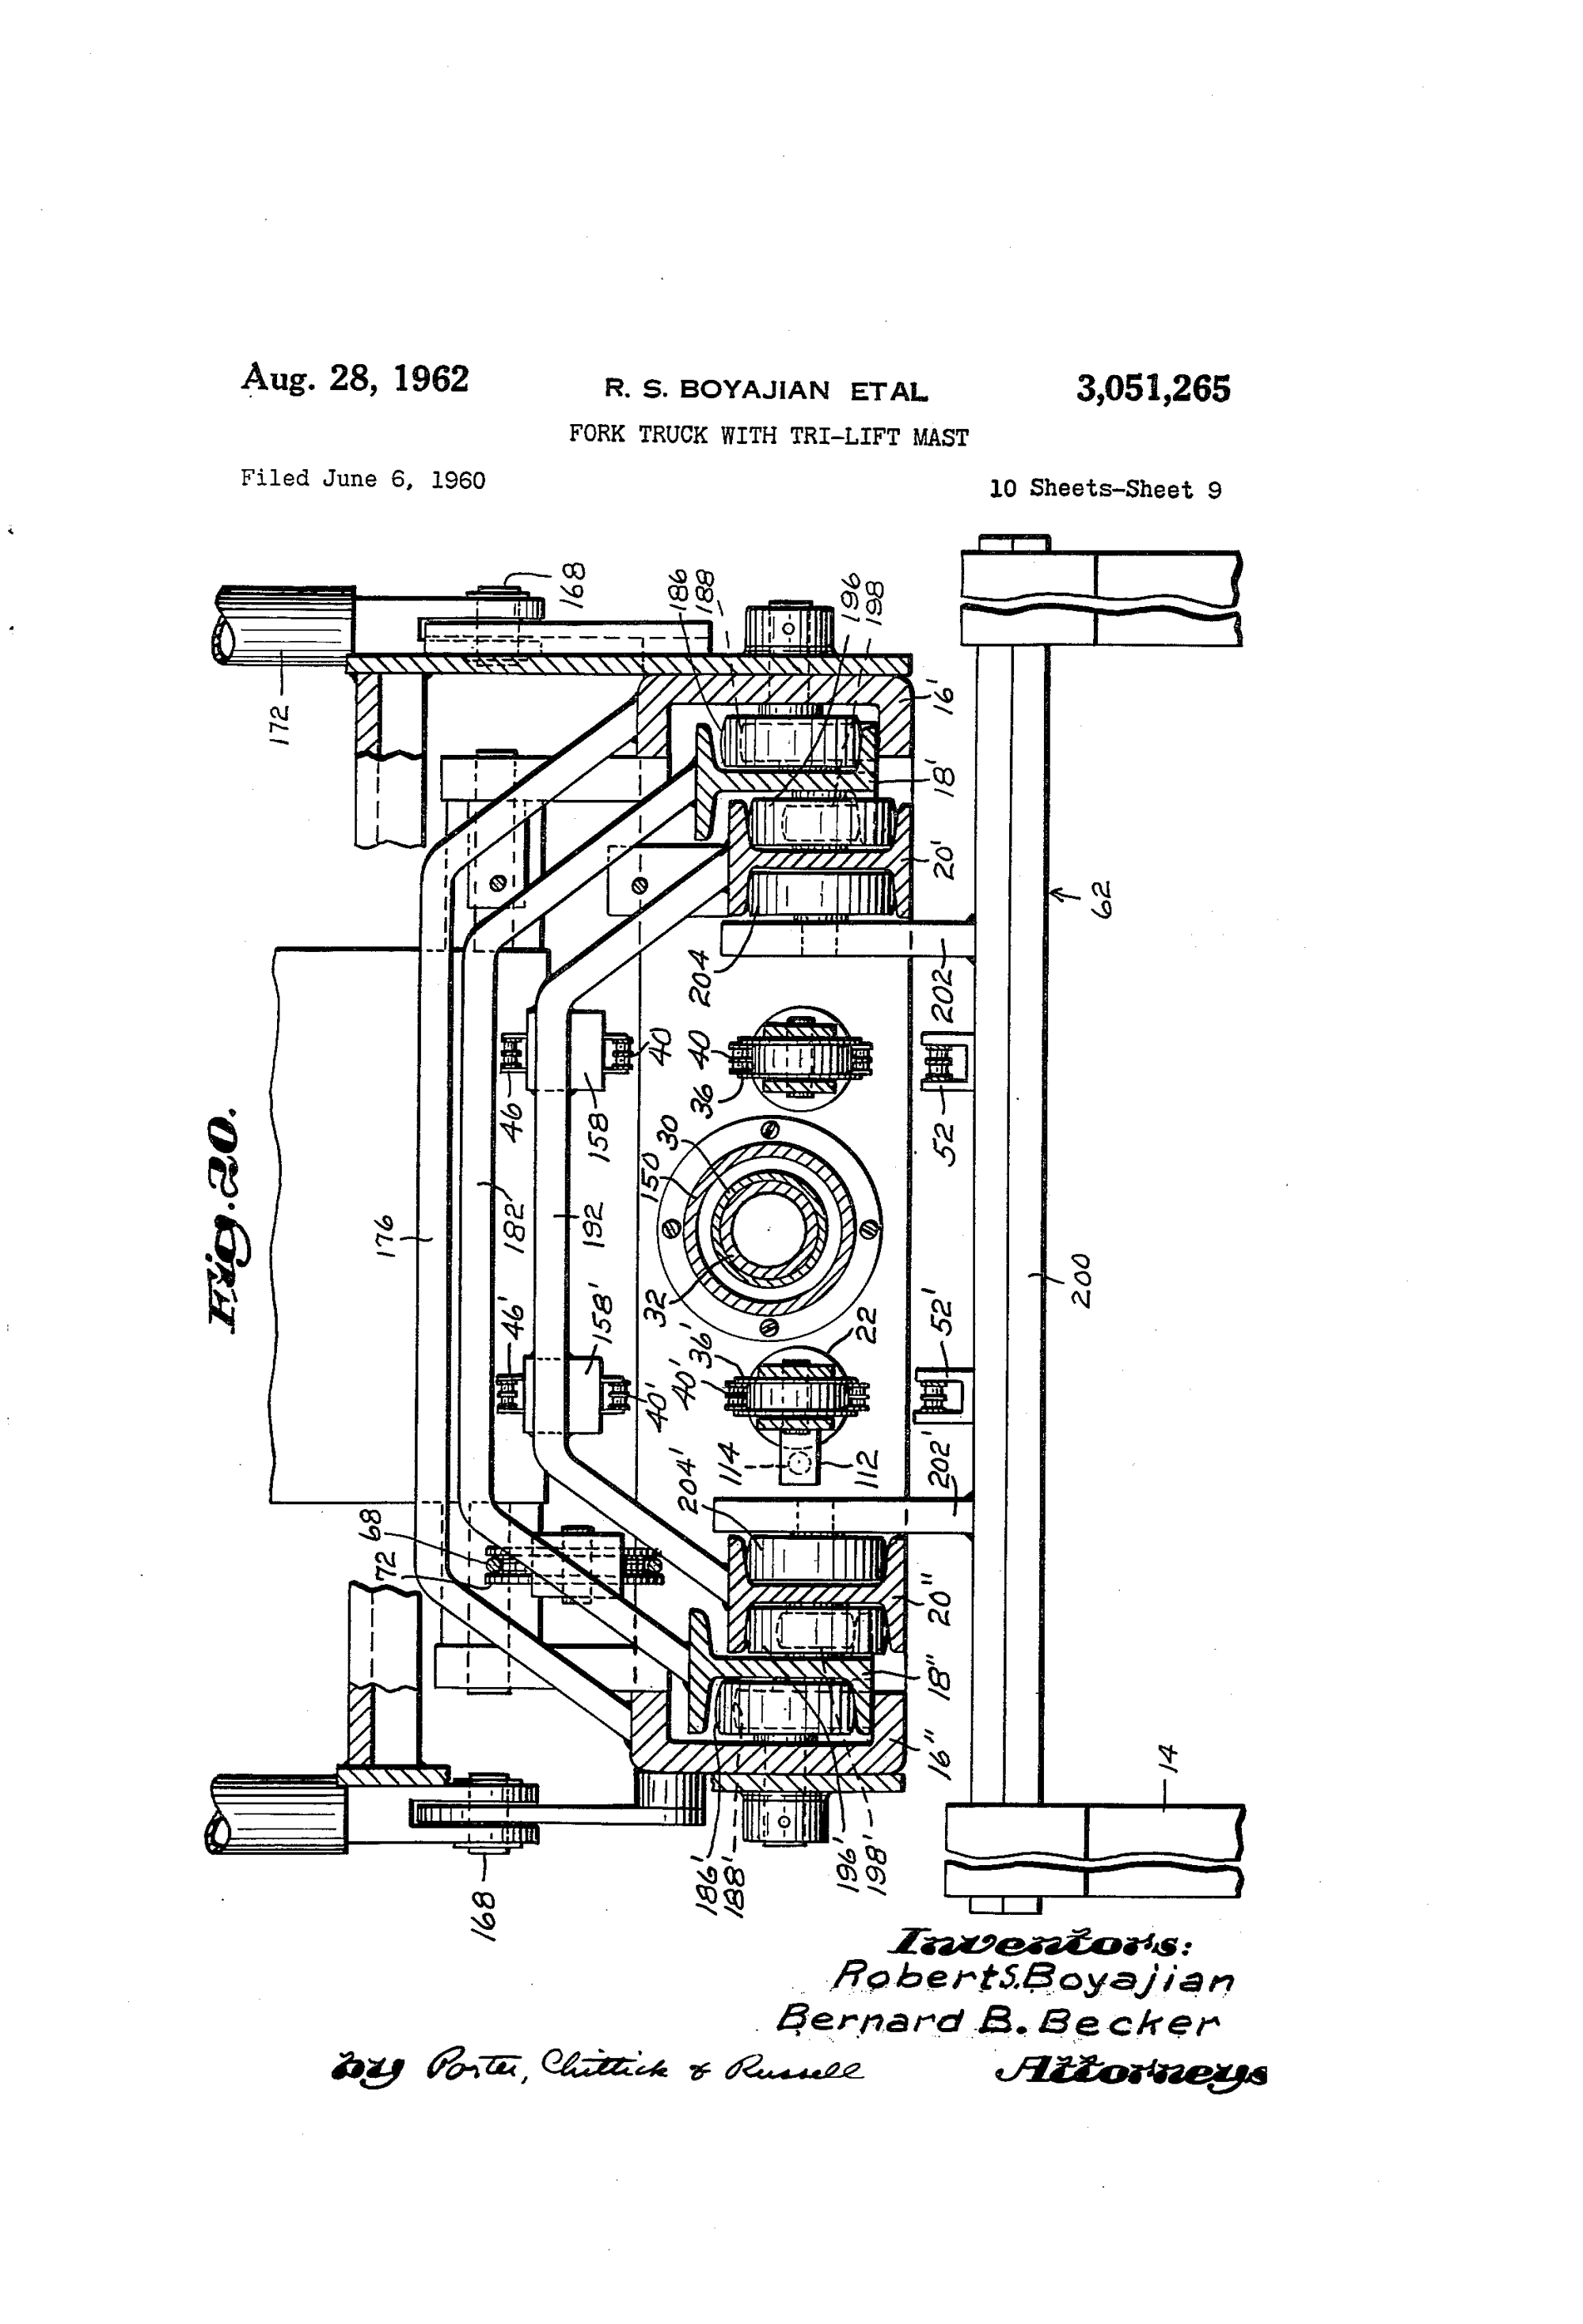 hight resolution of yale glp forklift wiring diagram for 50 yale forklift coil hyster engine diagram hyster forklift s50xm wiring diagram